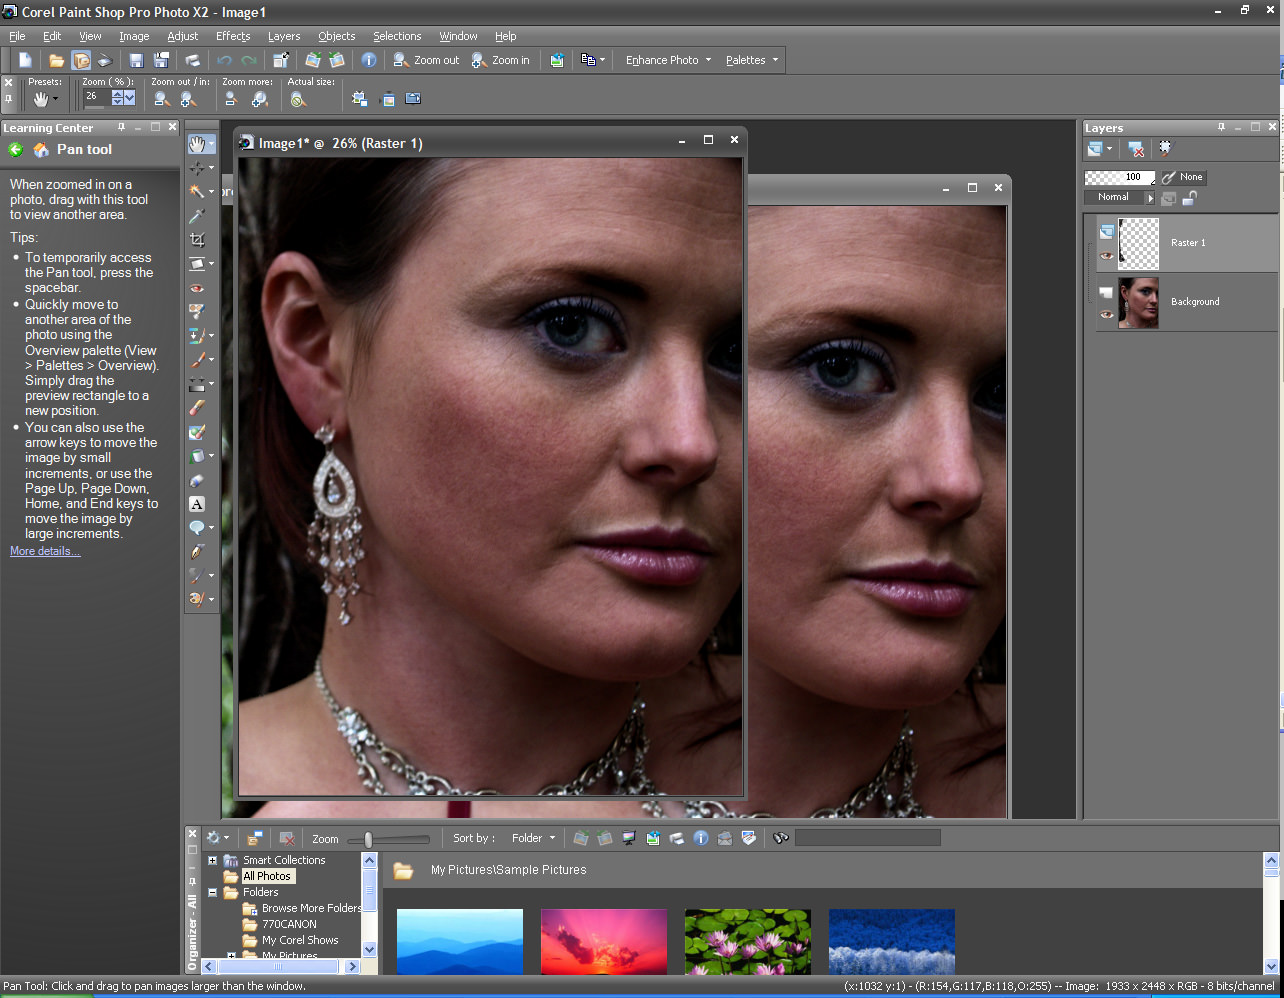 Corel paint shop pro photo x2 corel paint shop pro review for Paint pros